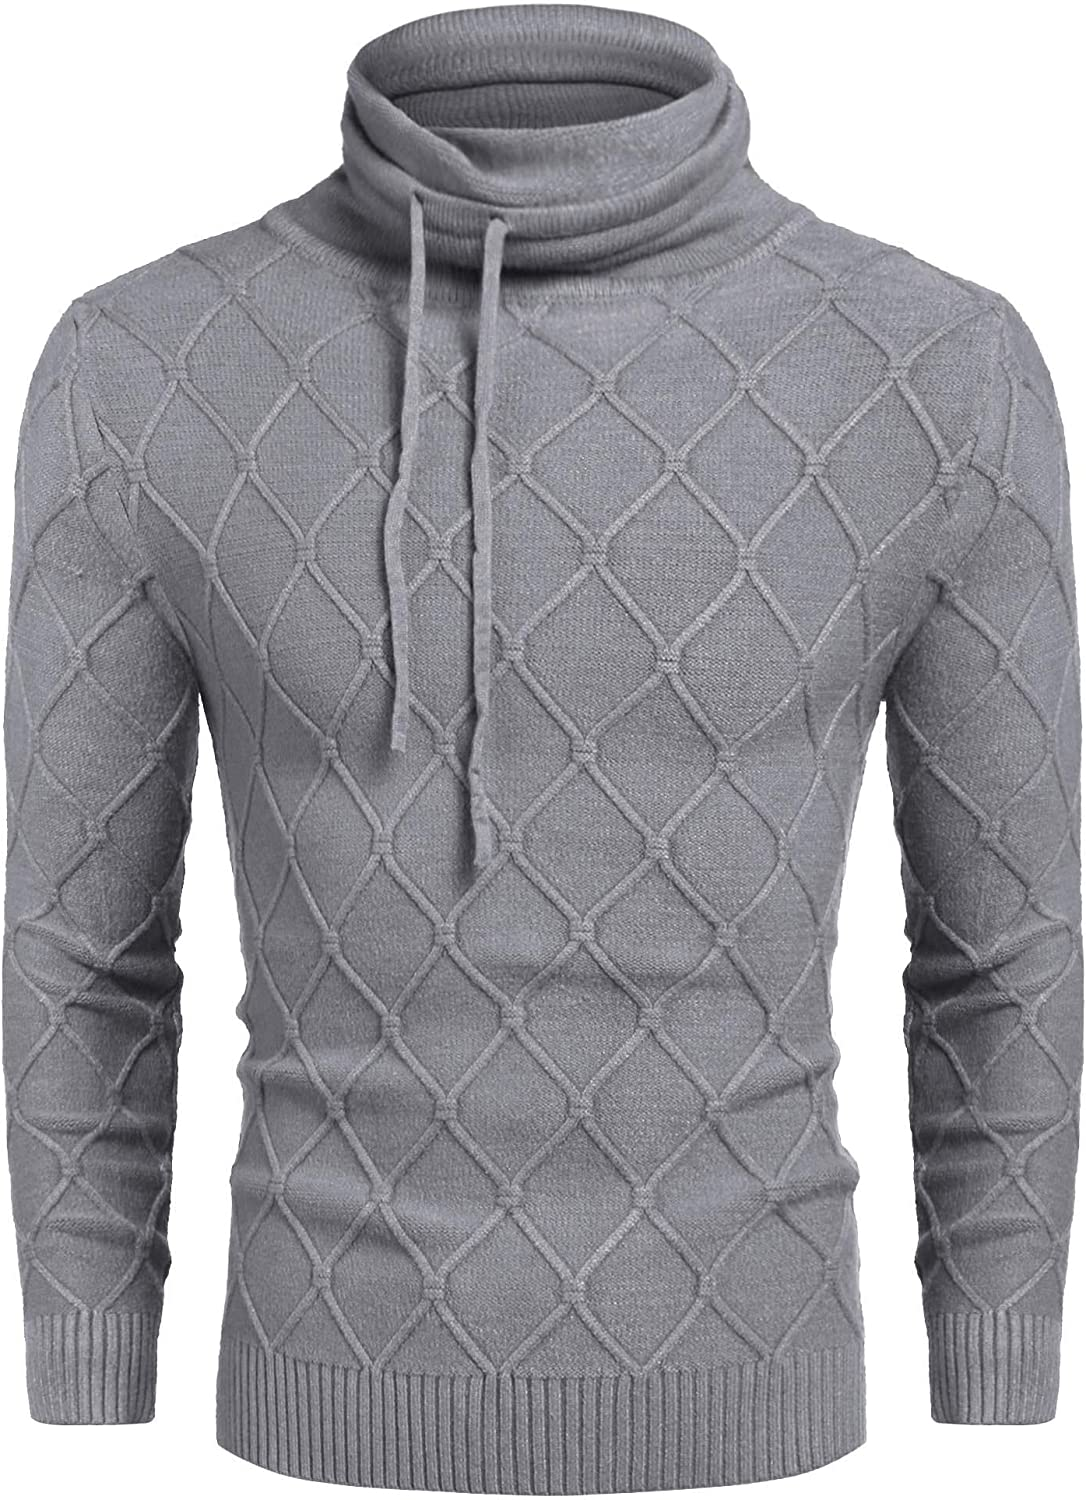 COOFANDY Men's Knitted Turtleneck Sweater Casual Thermal Long Sleeve Pullover